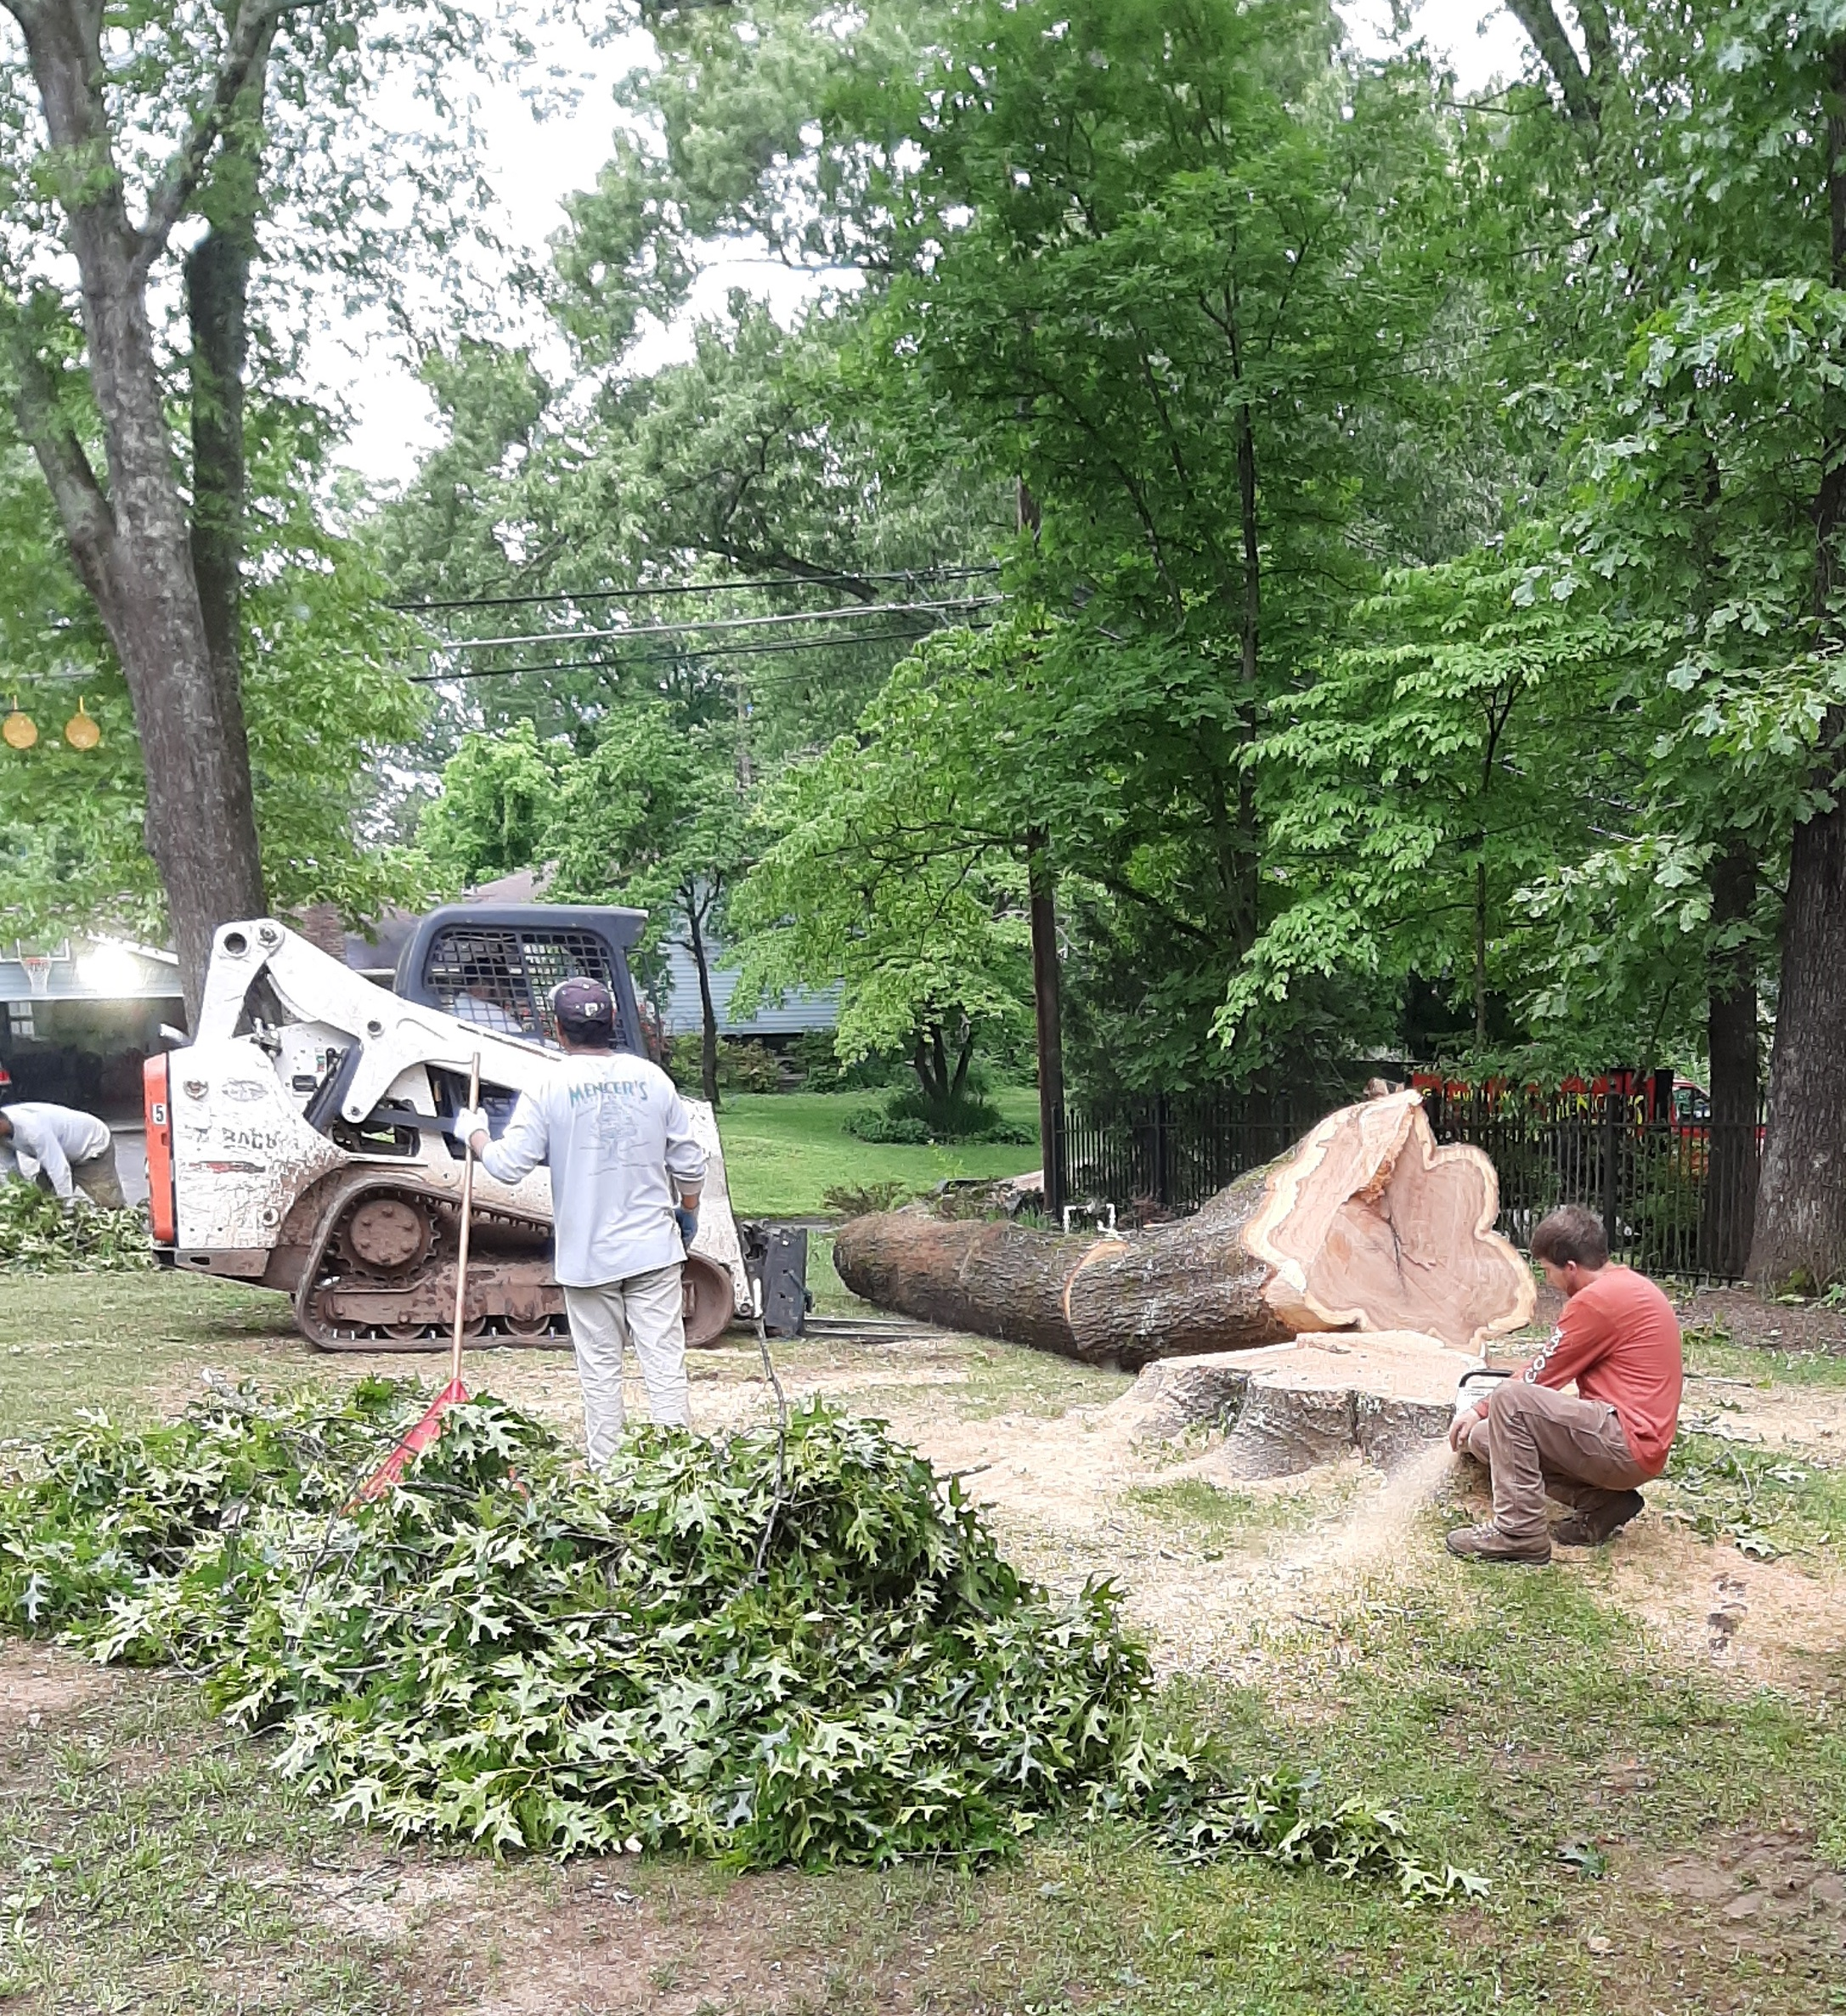 Man working on stump showing the last part of the tree trunk laying on ground